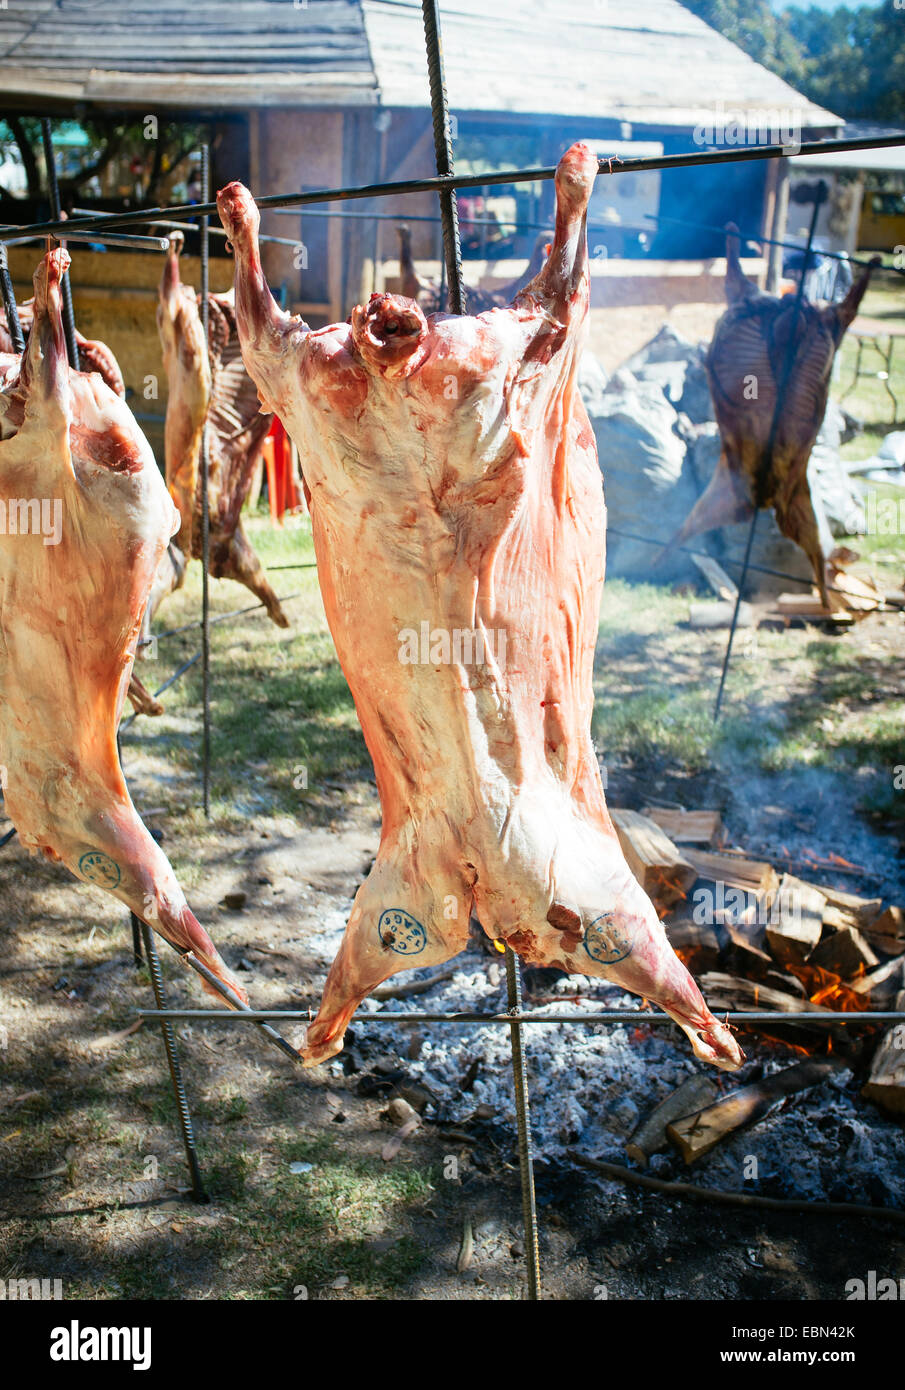 whole lamb roasted on the grill Stock Photo, Royalty Free Image ... for Whole Lamb Grill  59nar